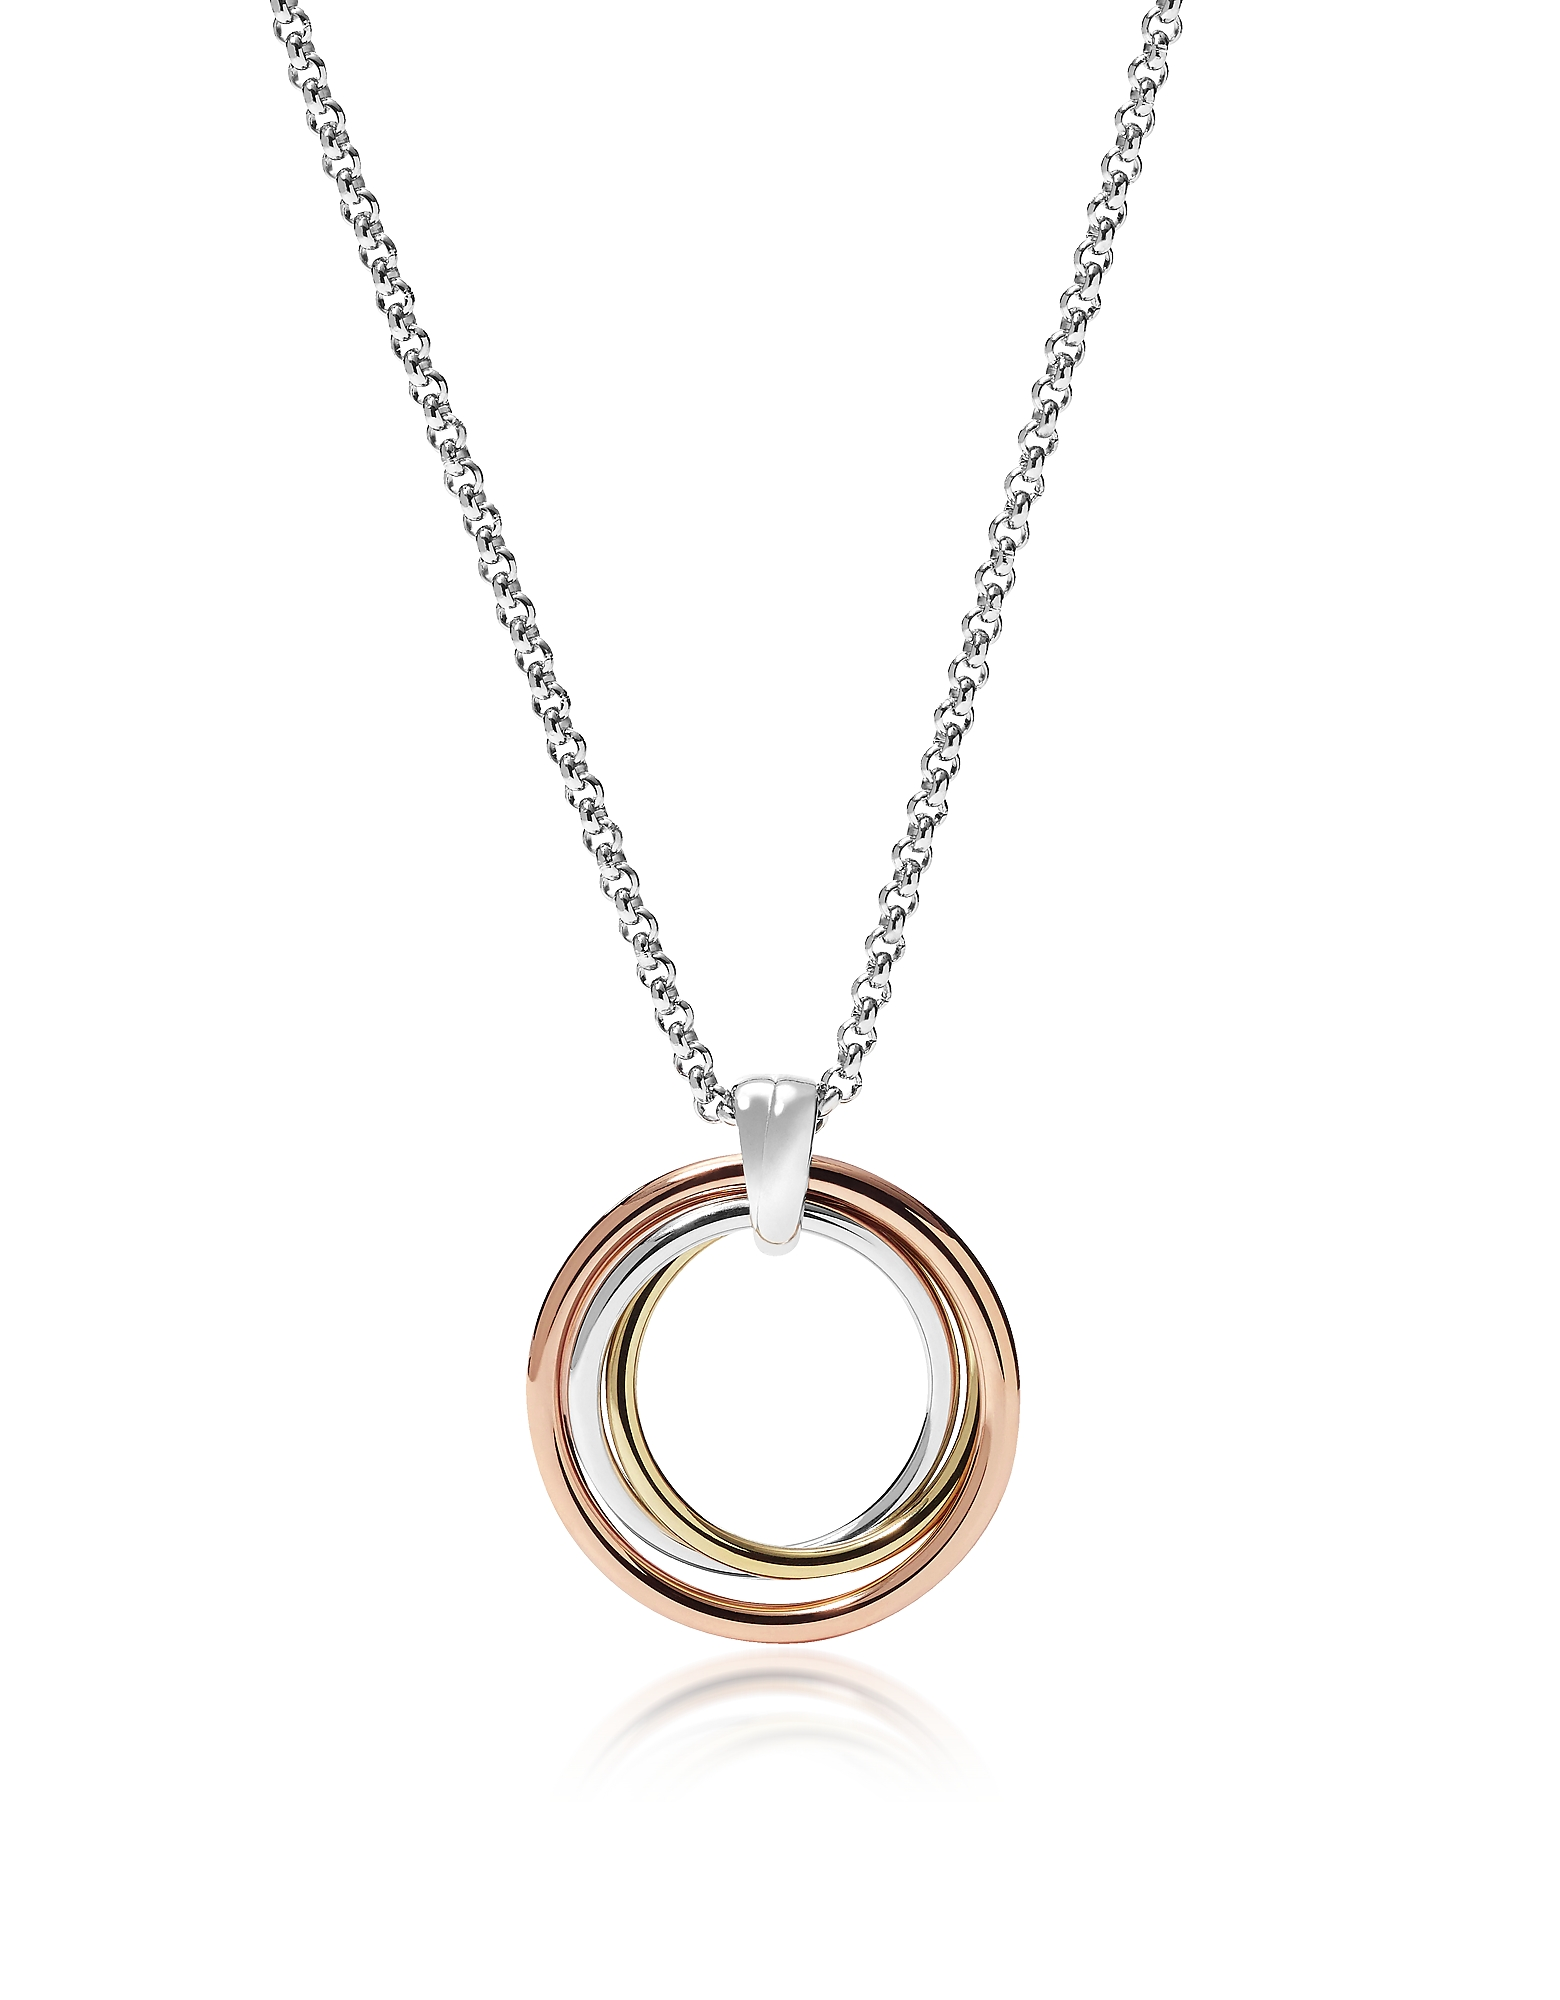 Fossil Necklaces, Tri-Tone Circle Women's Necklace